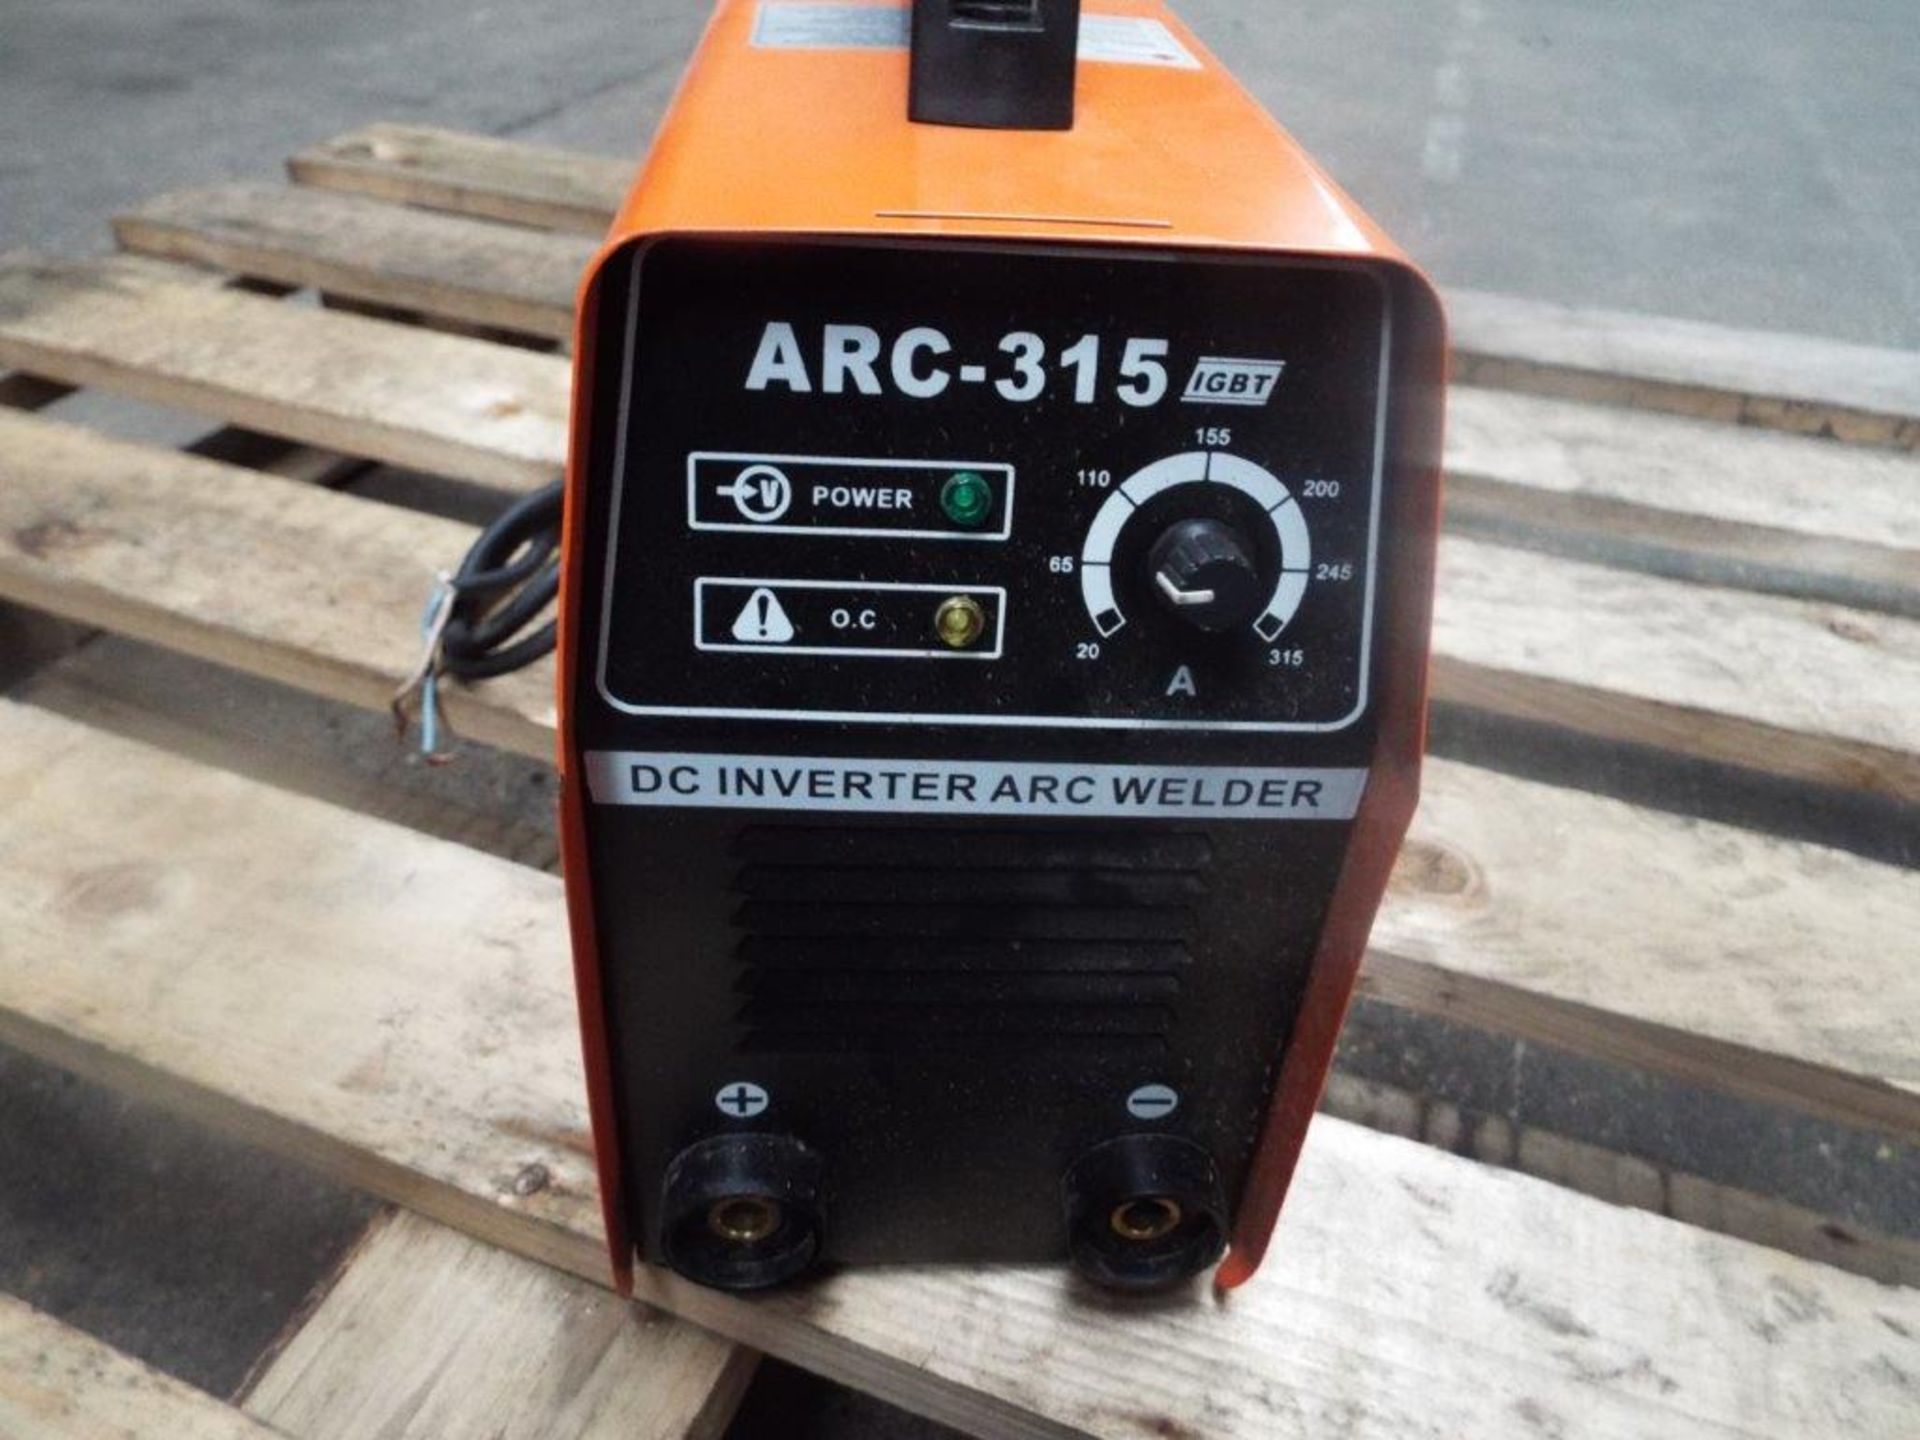 Lotto 21136 - IGBT ARC-315 DC Inverter Arc Welder